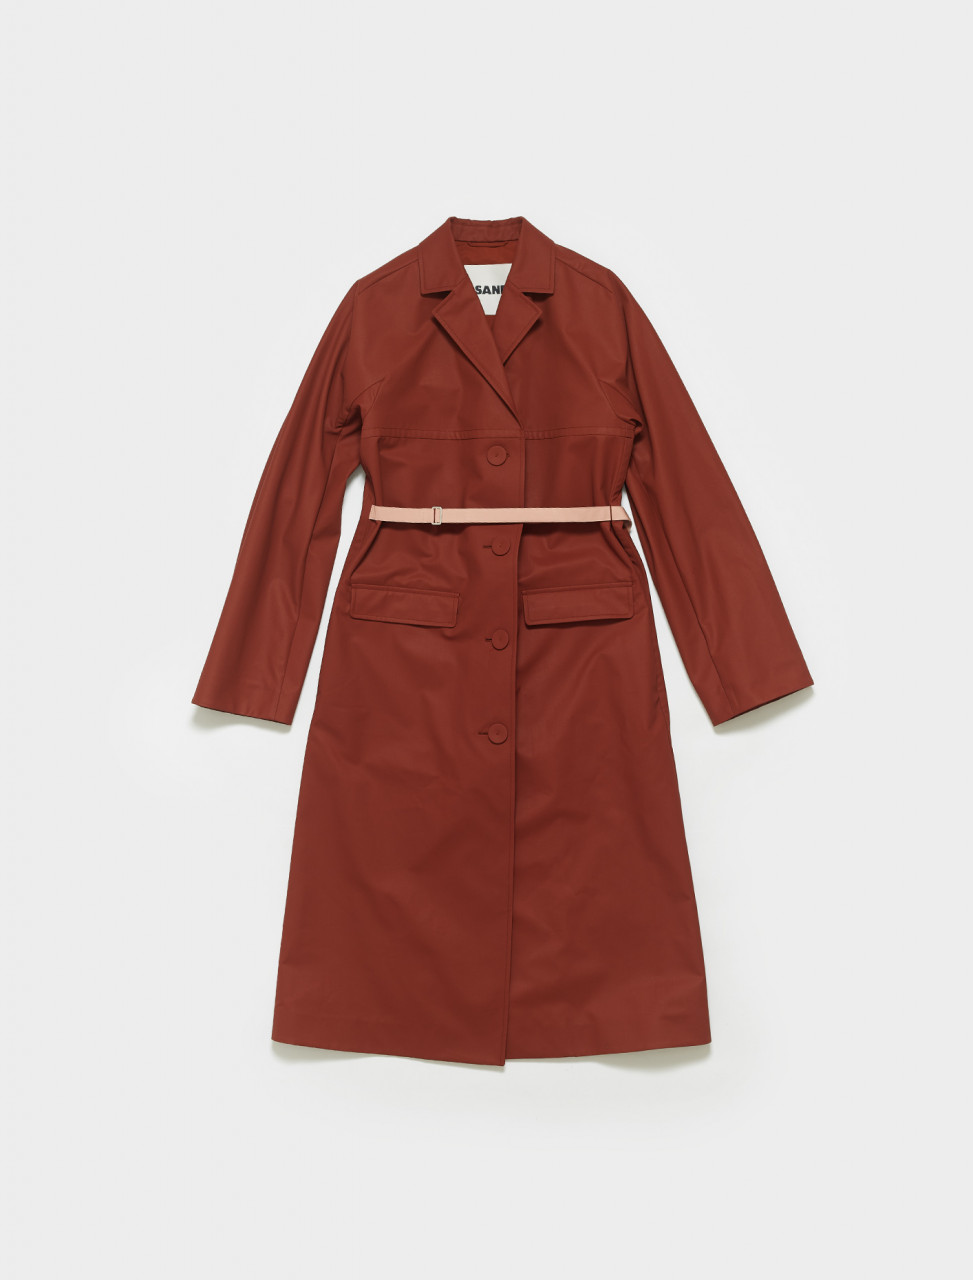 JSWS125104-WS242300A-223 JIL SANDER CANVAS BELTED COAT BROWN